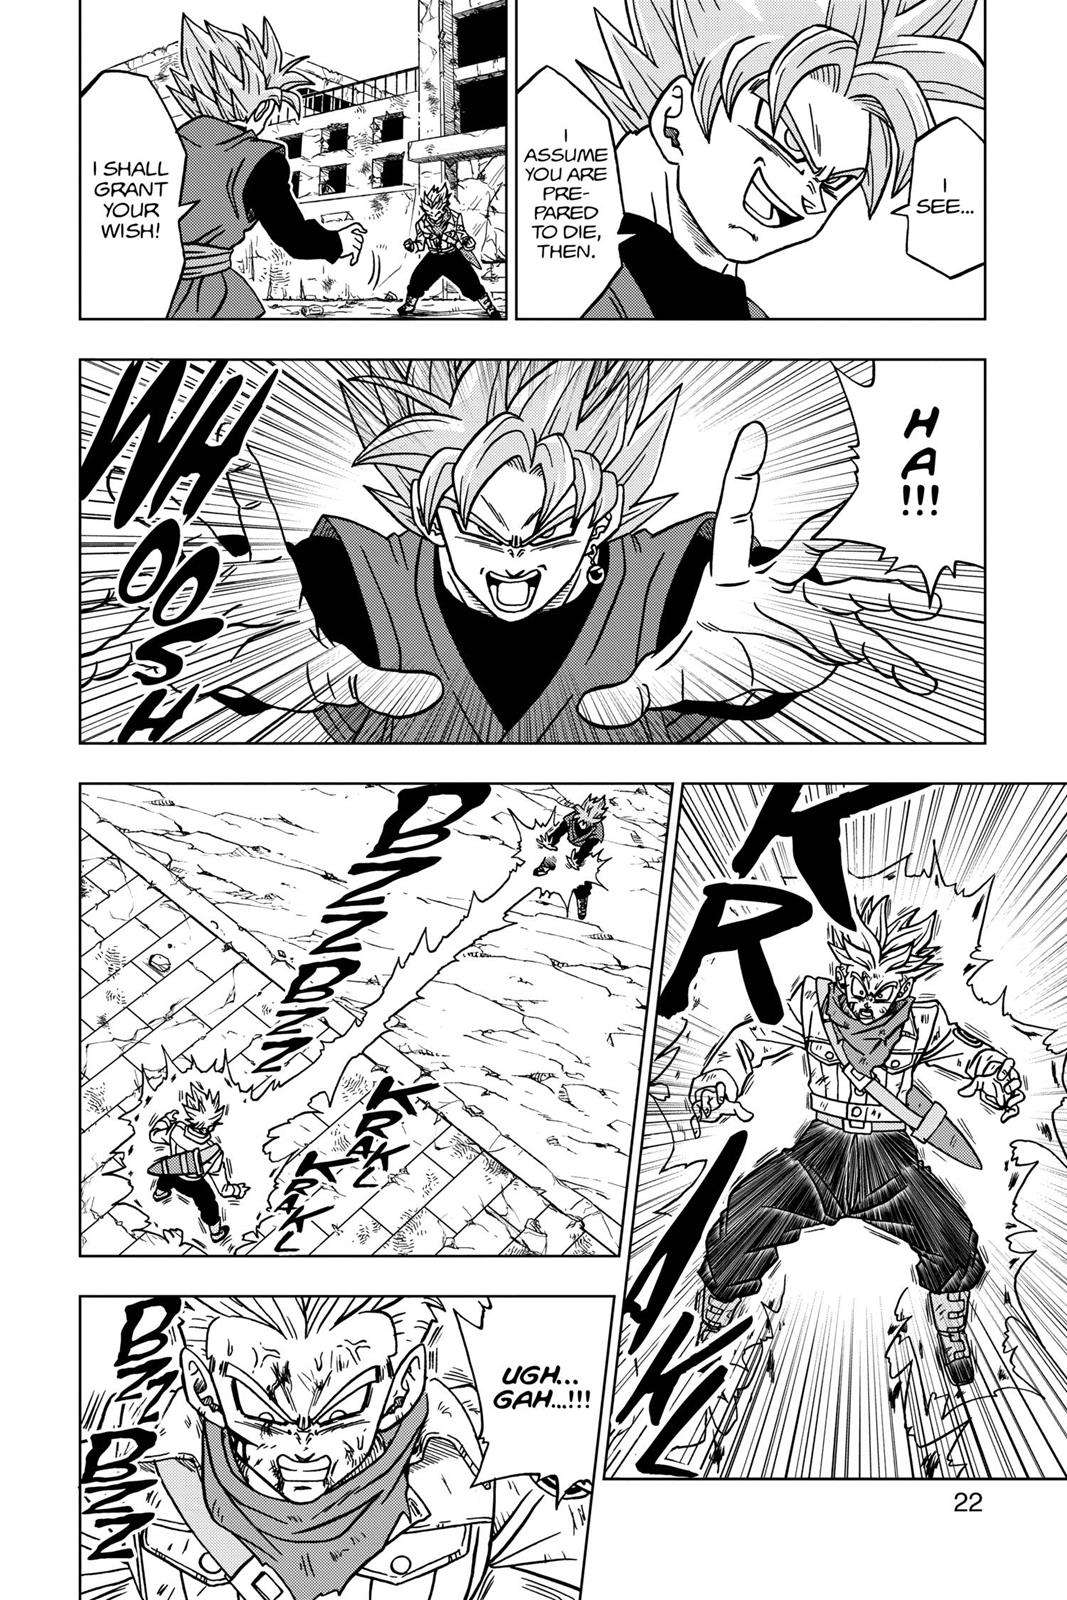 Dragon Ball Super Chapter 21 Page 23